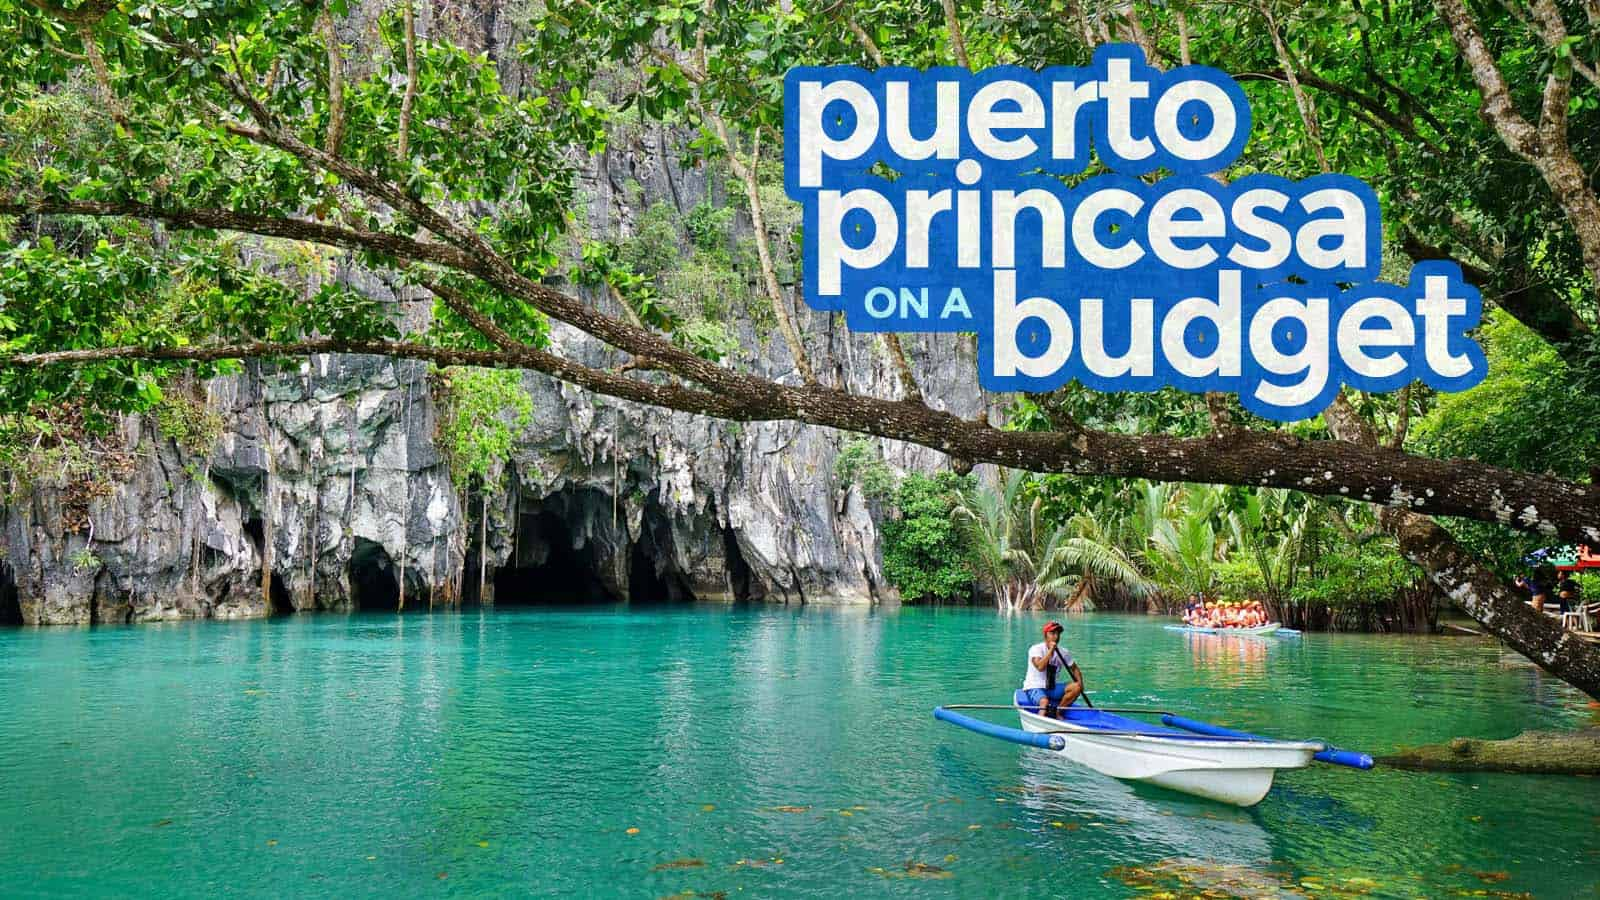 New! PUERTO PRINCESA TRAVEL GUIDE: Itinerary, Things to Do, Budget